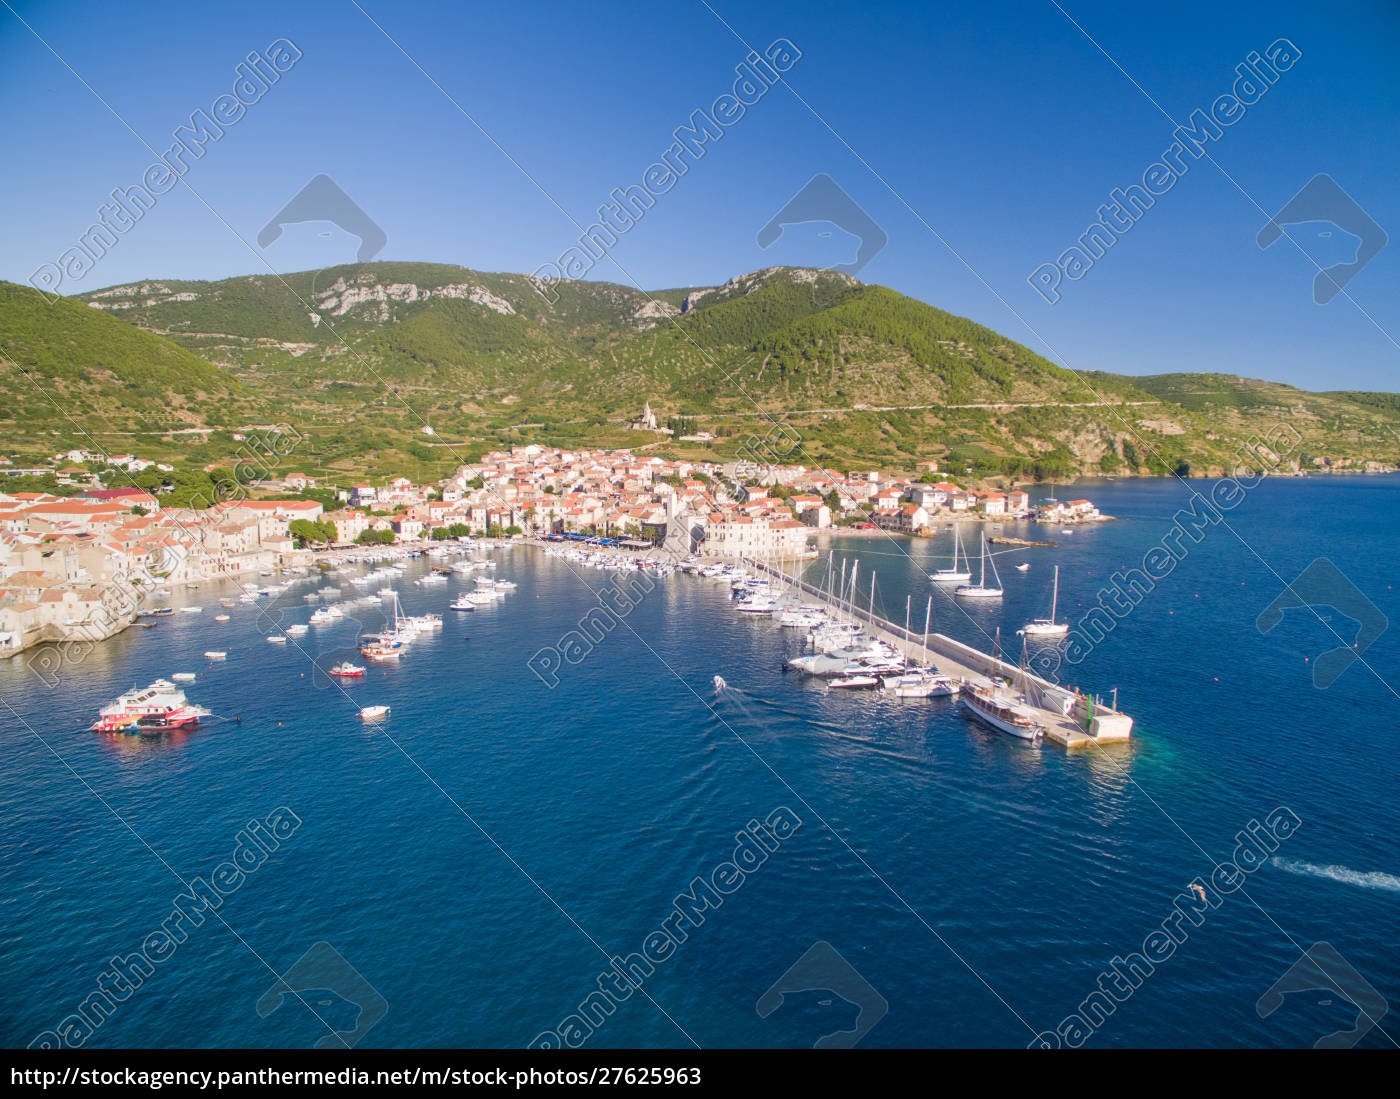 aerial, view, of, boats, docked, in - 27625963